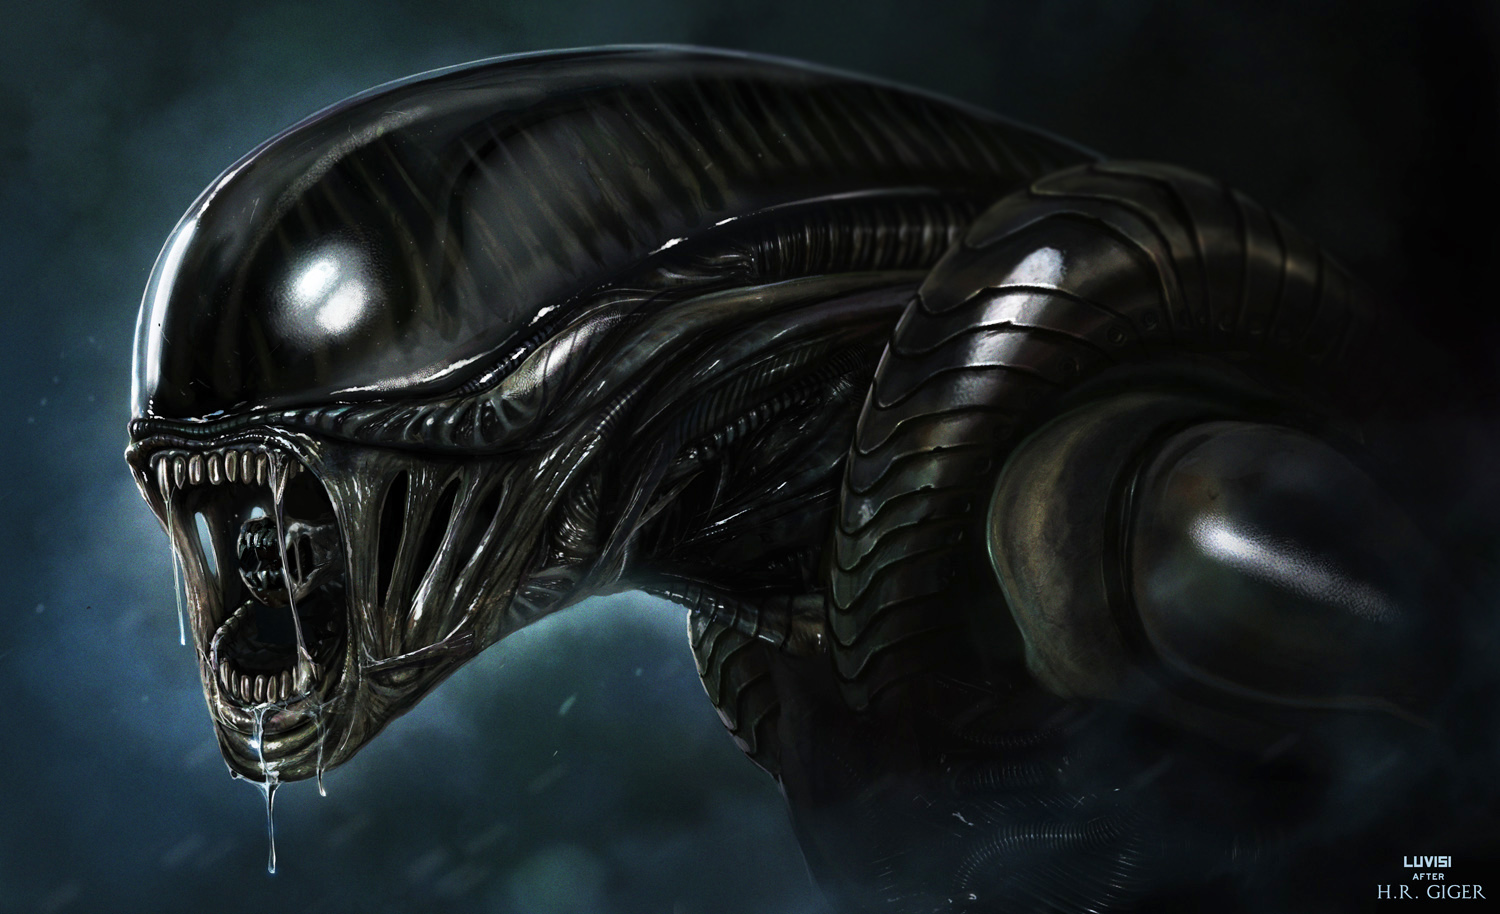 V.48 Alien, High Resolution Wallpaper